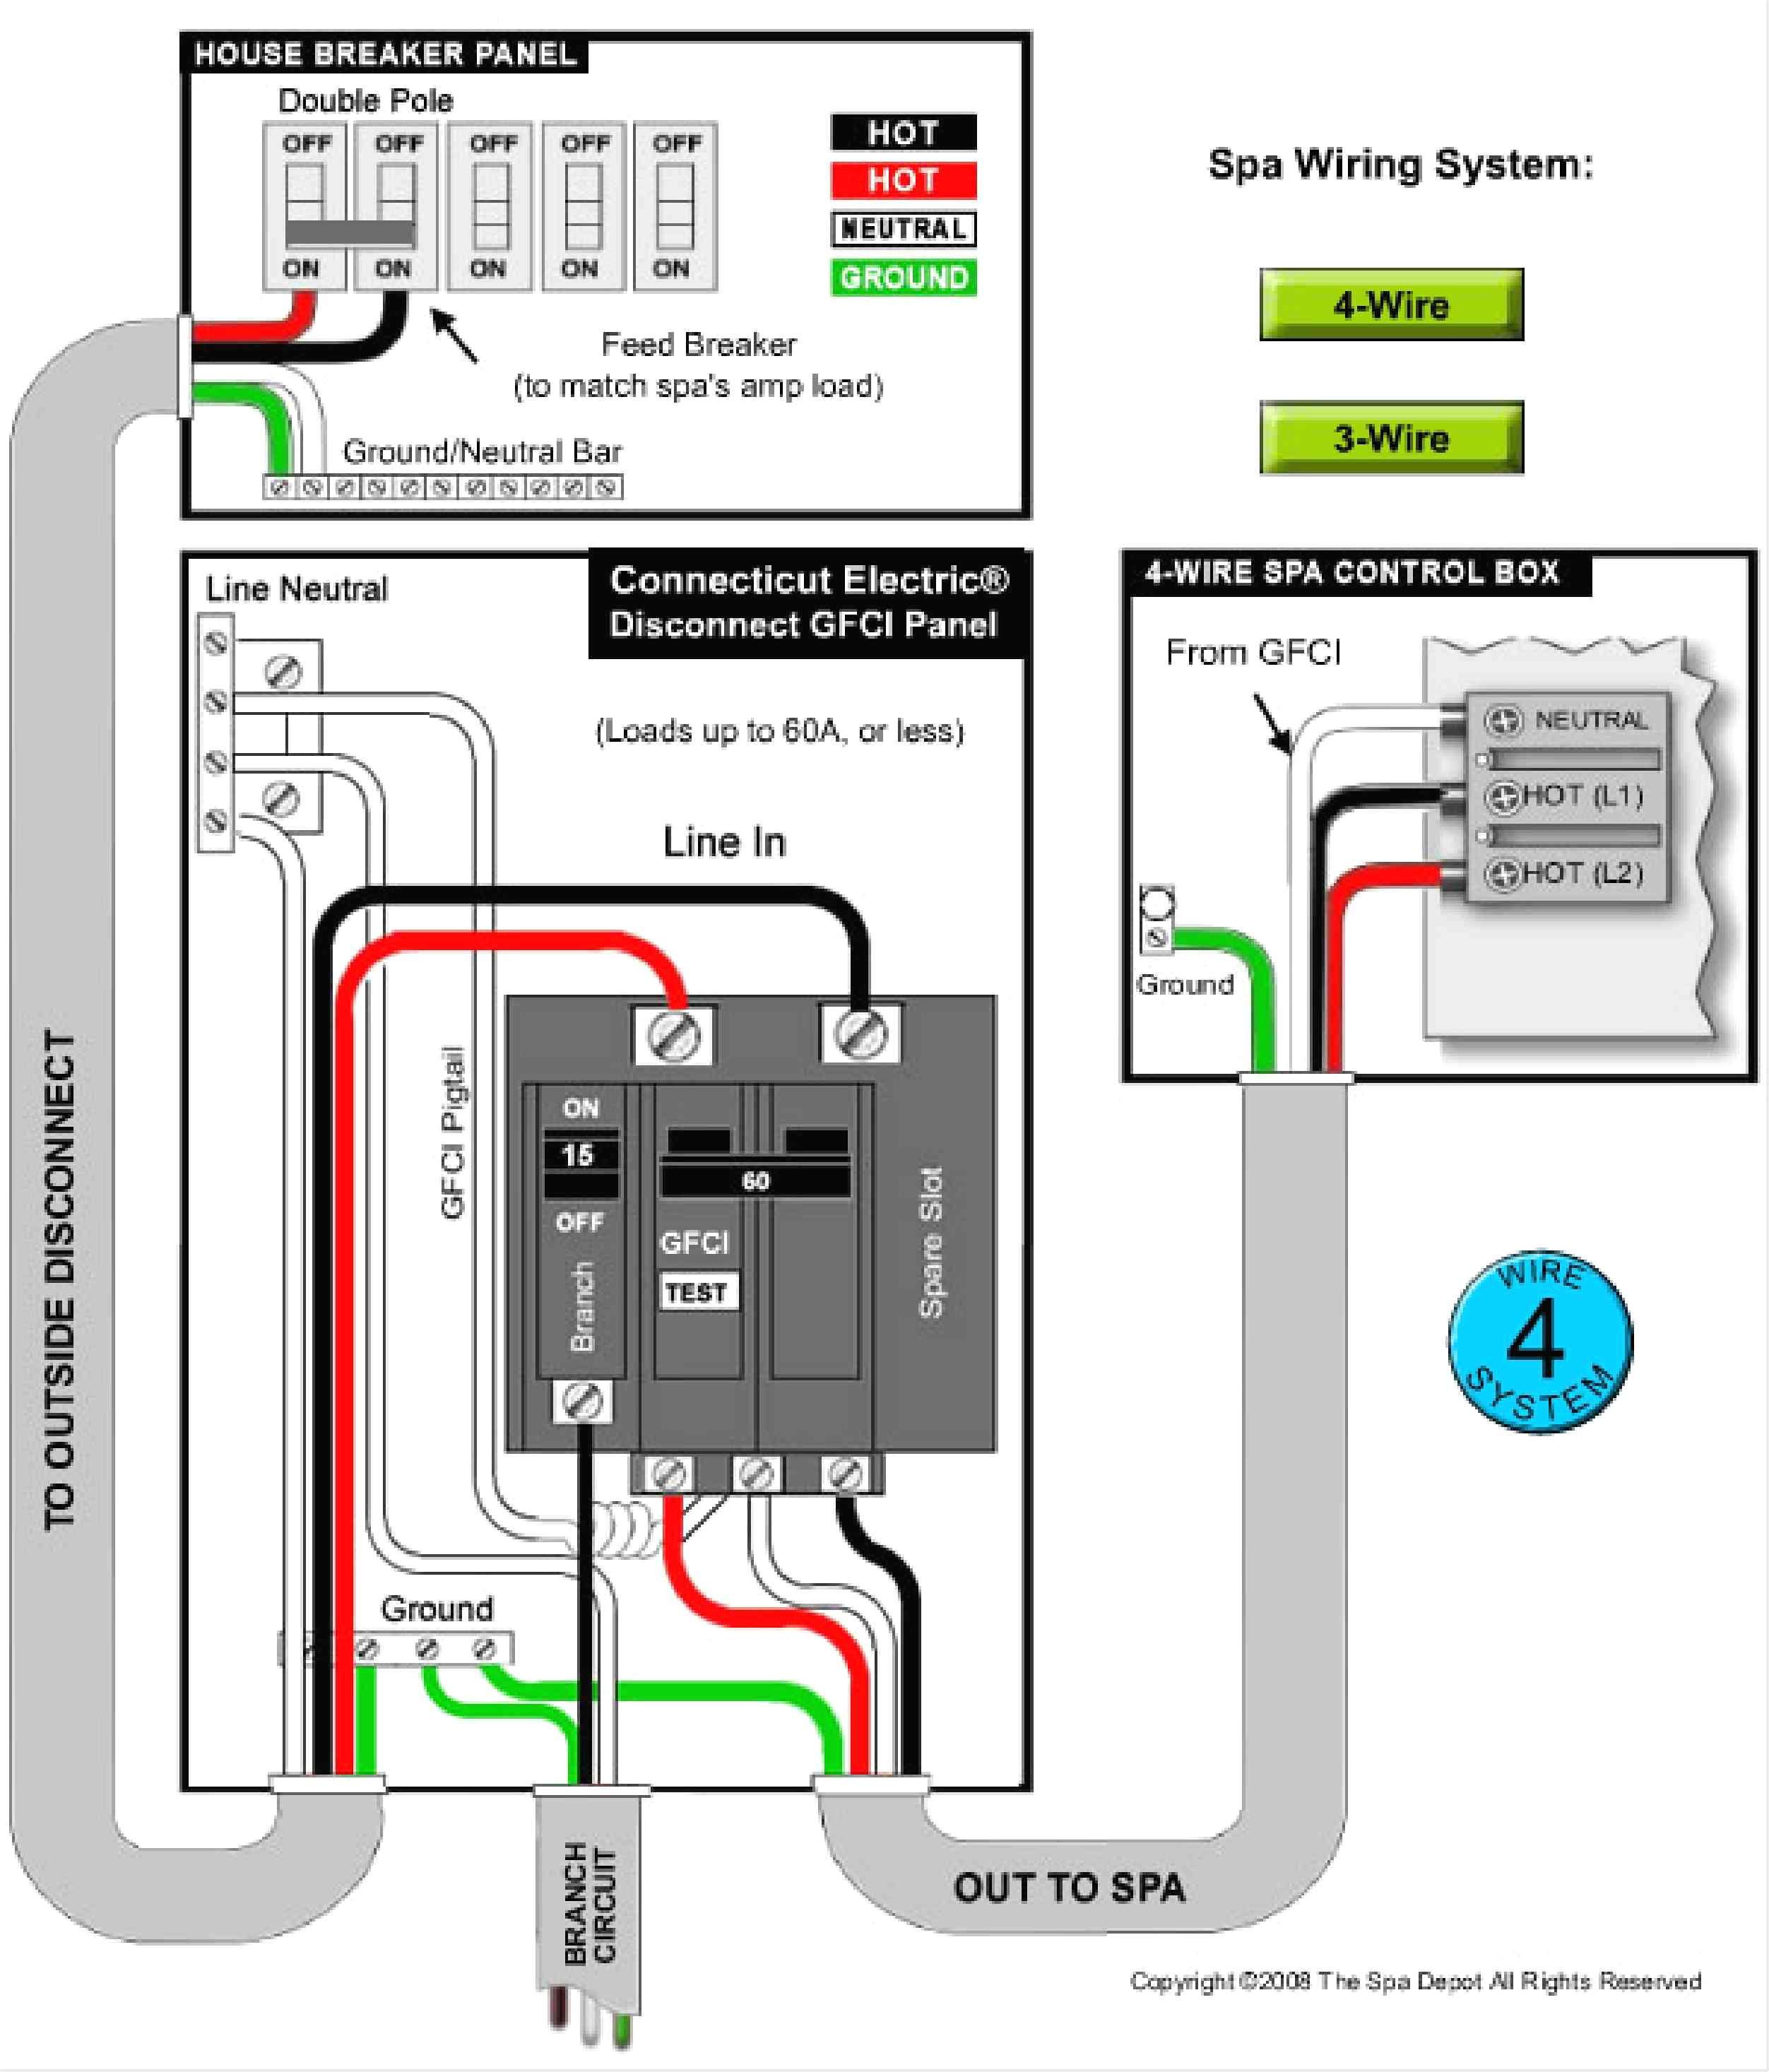 Electrical Disconnect Fuse Panel Diagram Of Pole 3 - Machine ... on